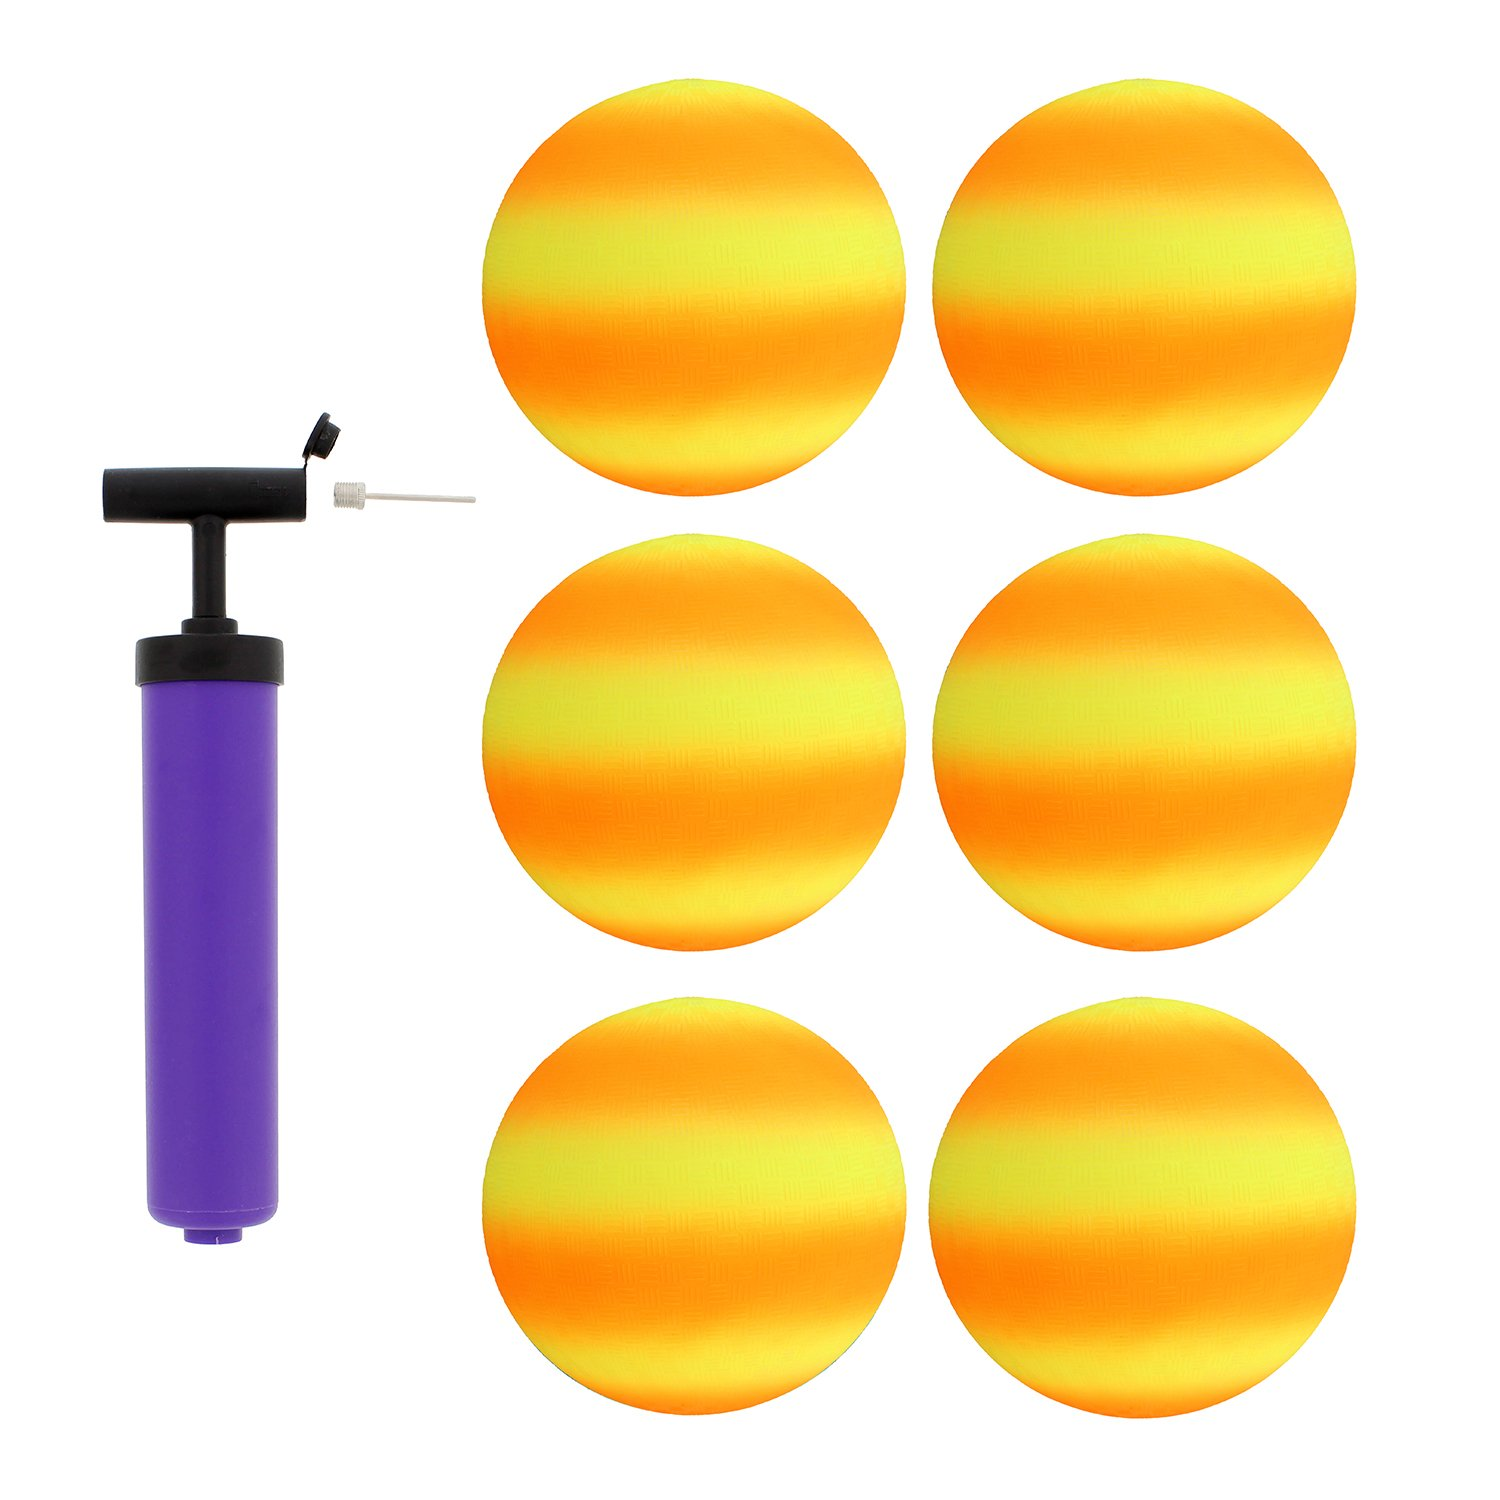 Get Out! Rubber Play Ball 6pk & Inflator, 8.5in Orange & Yellow Small Playground Ball Four Square Balls & Hand Pump